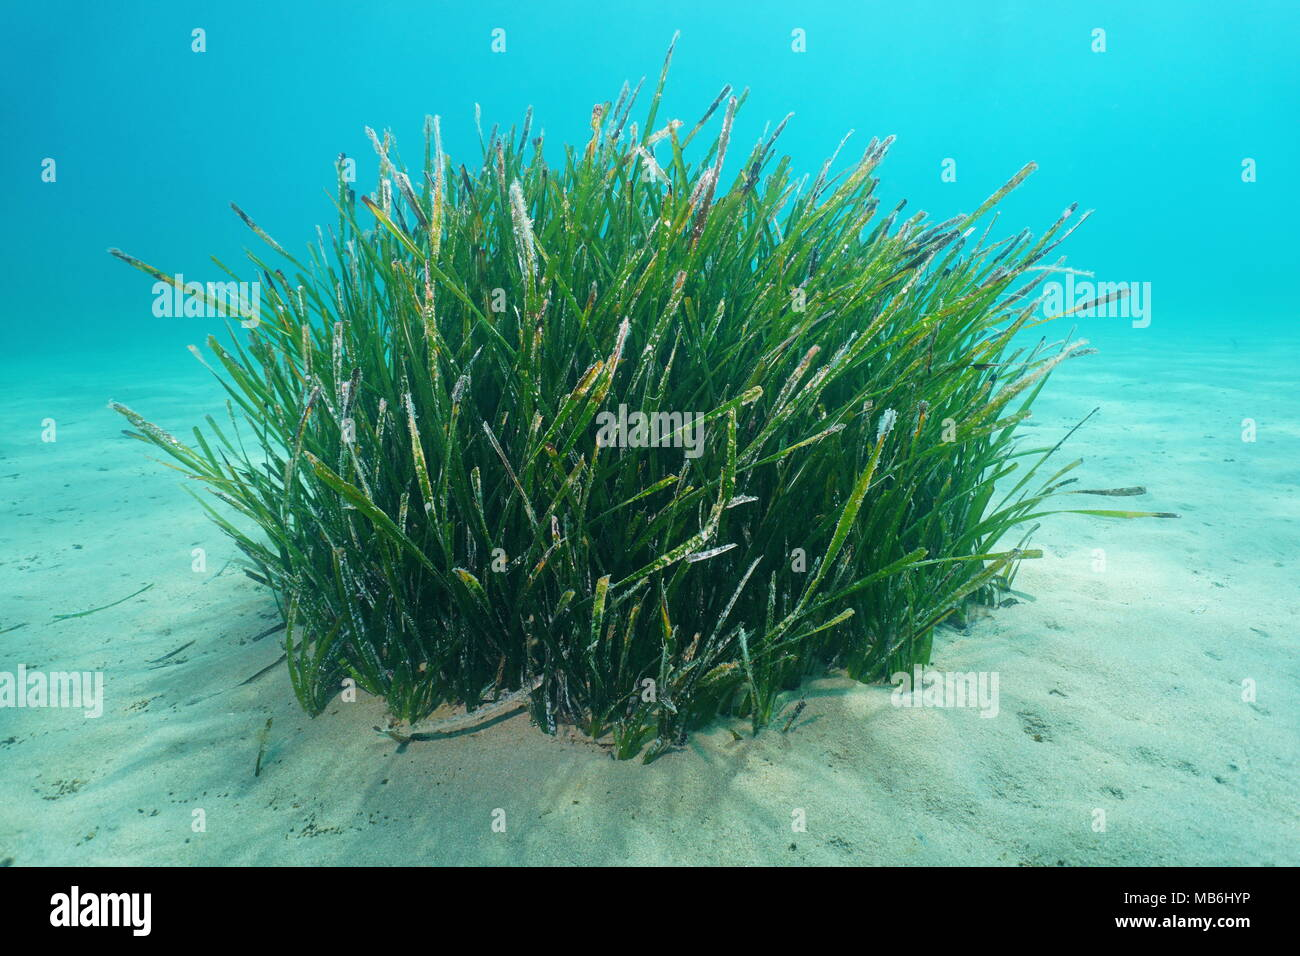 seagrass underwater a tuft of neptune grass posidonia oceanica on